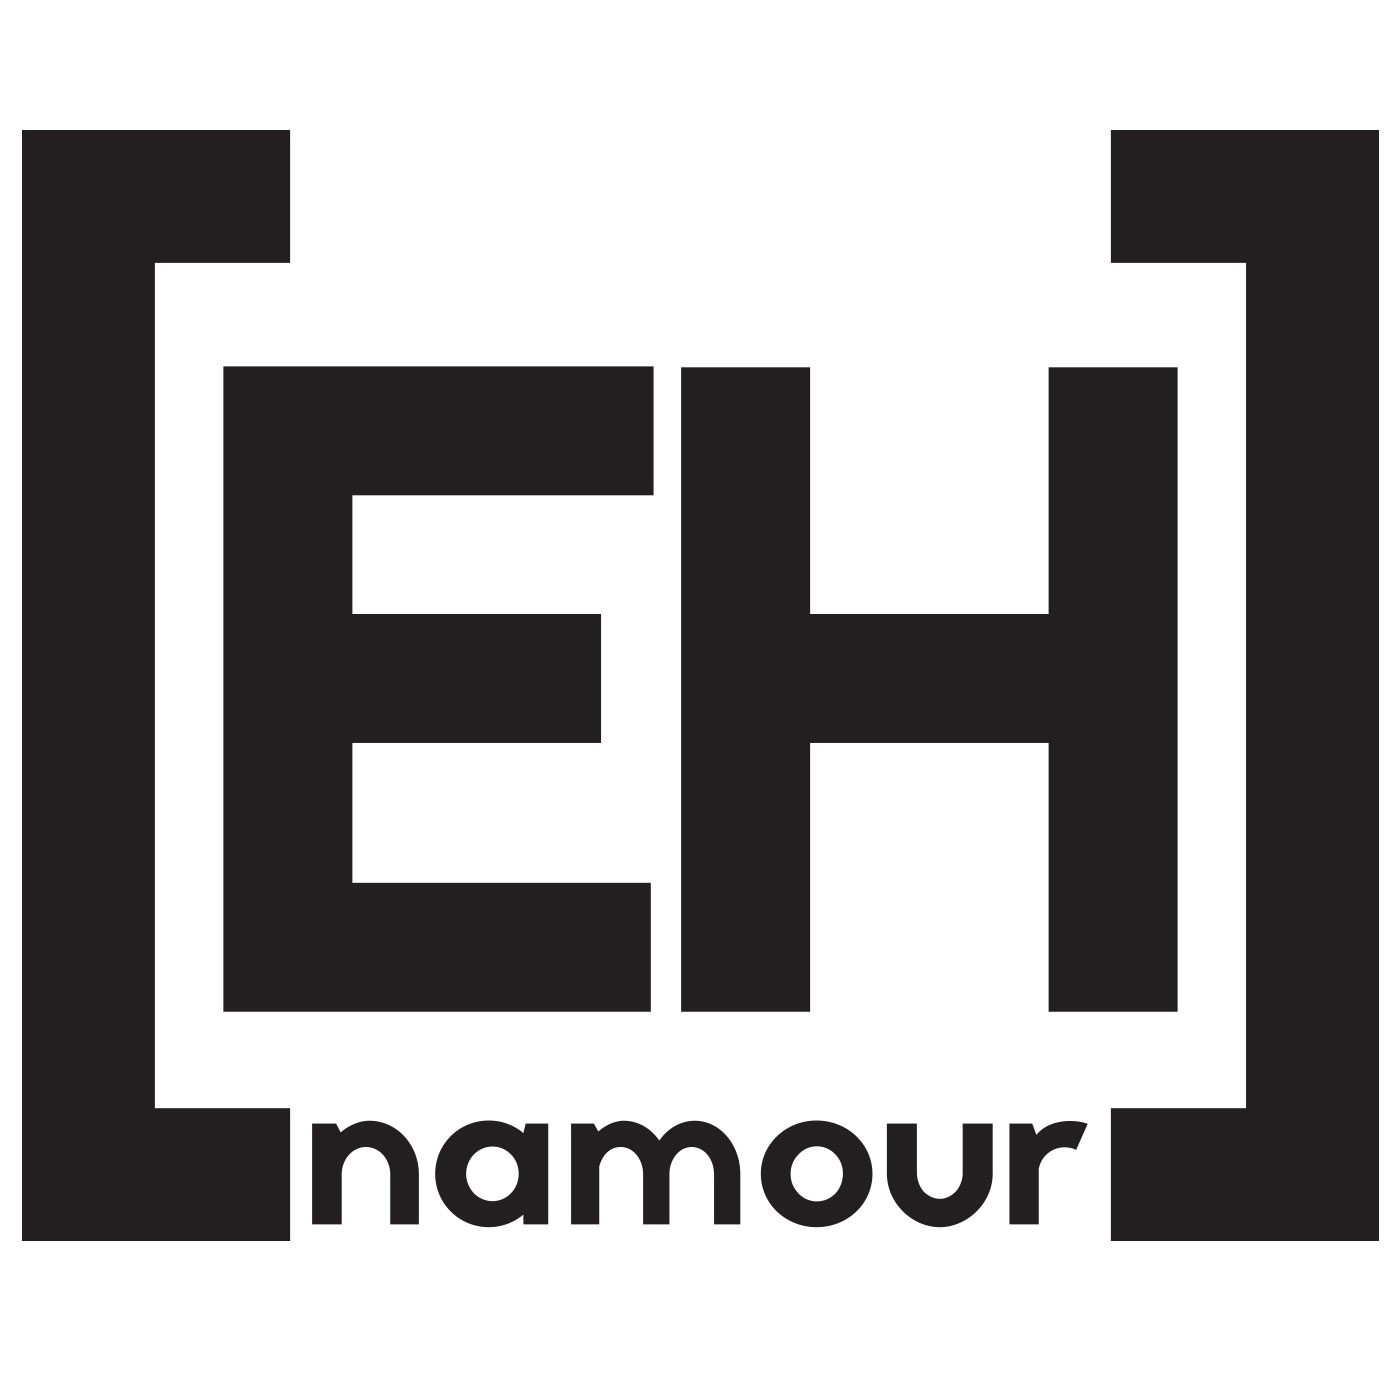 podcast Eh Namour – Eh Namour